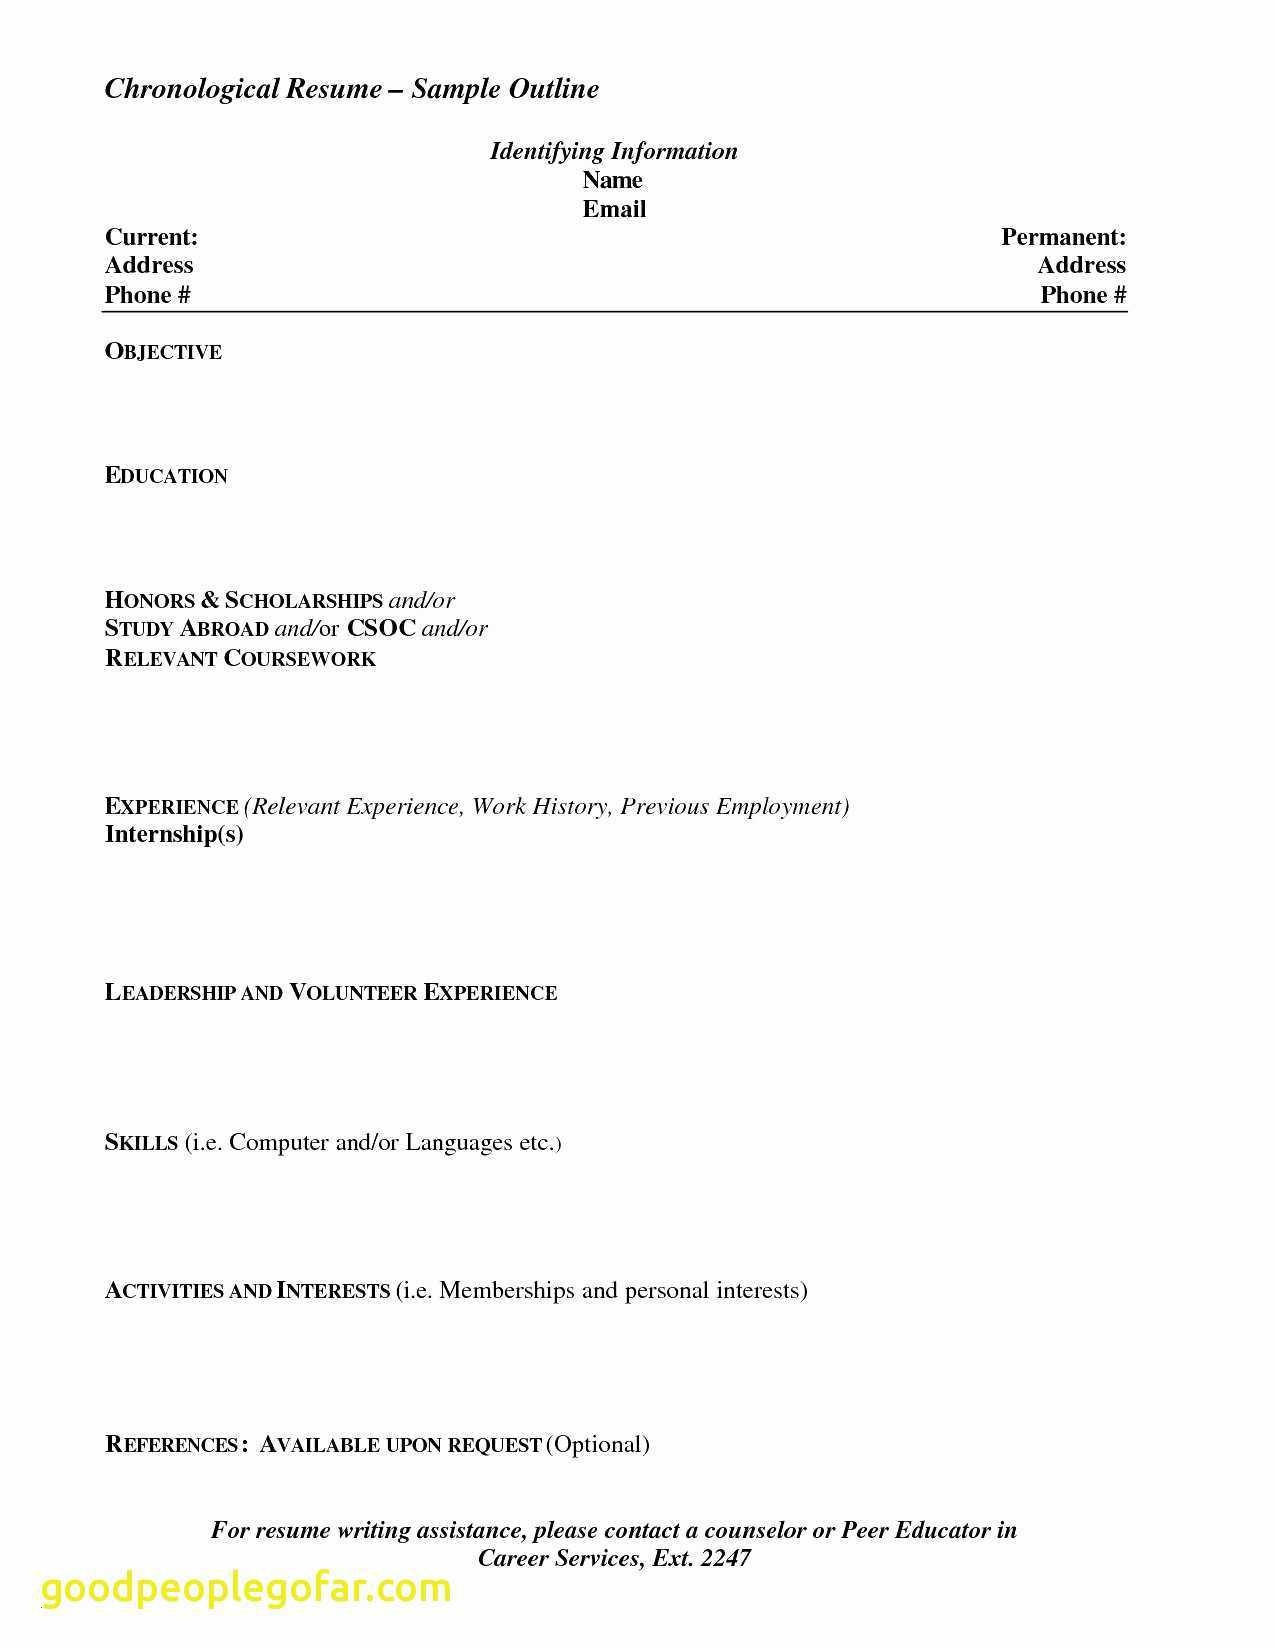 Free Online Cover Letter Template - Professional Resume Template Free Line